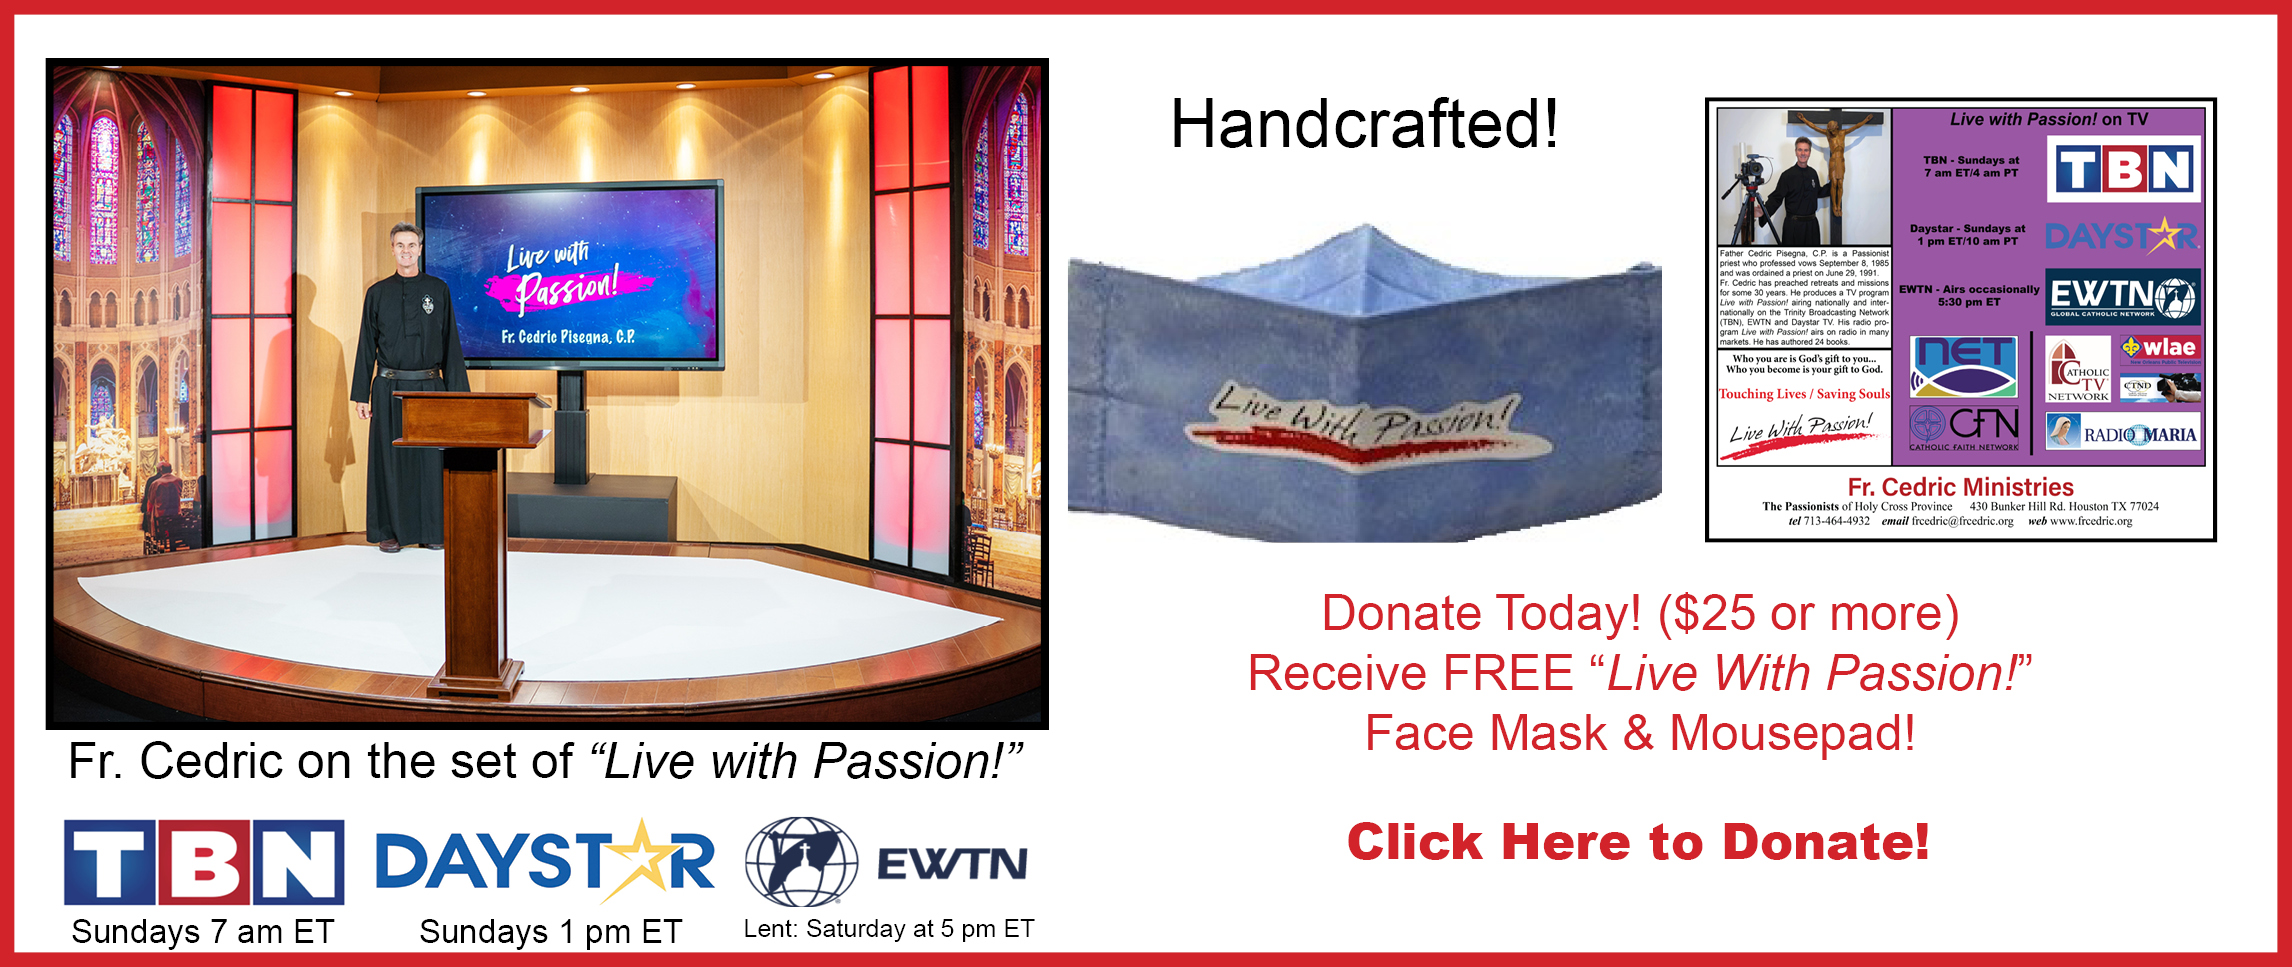 Donation-Lent-Ewtn-mask-mousepad.jpg